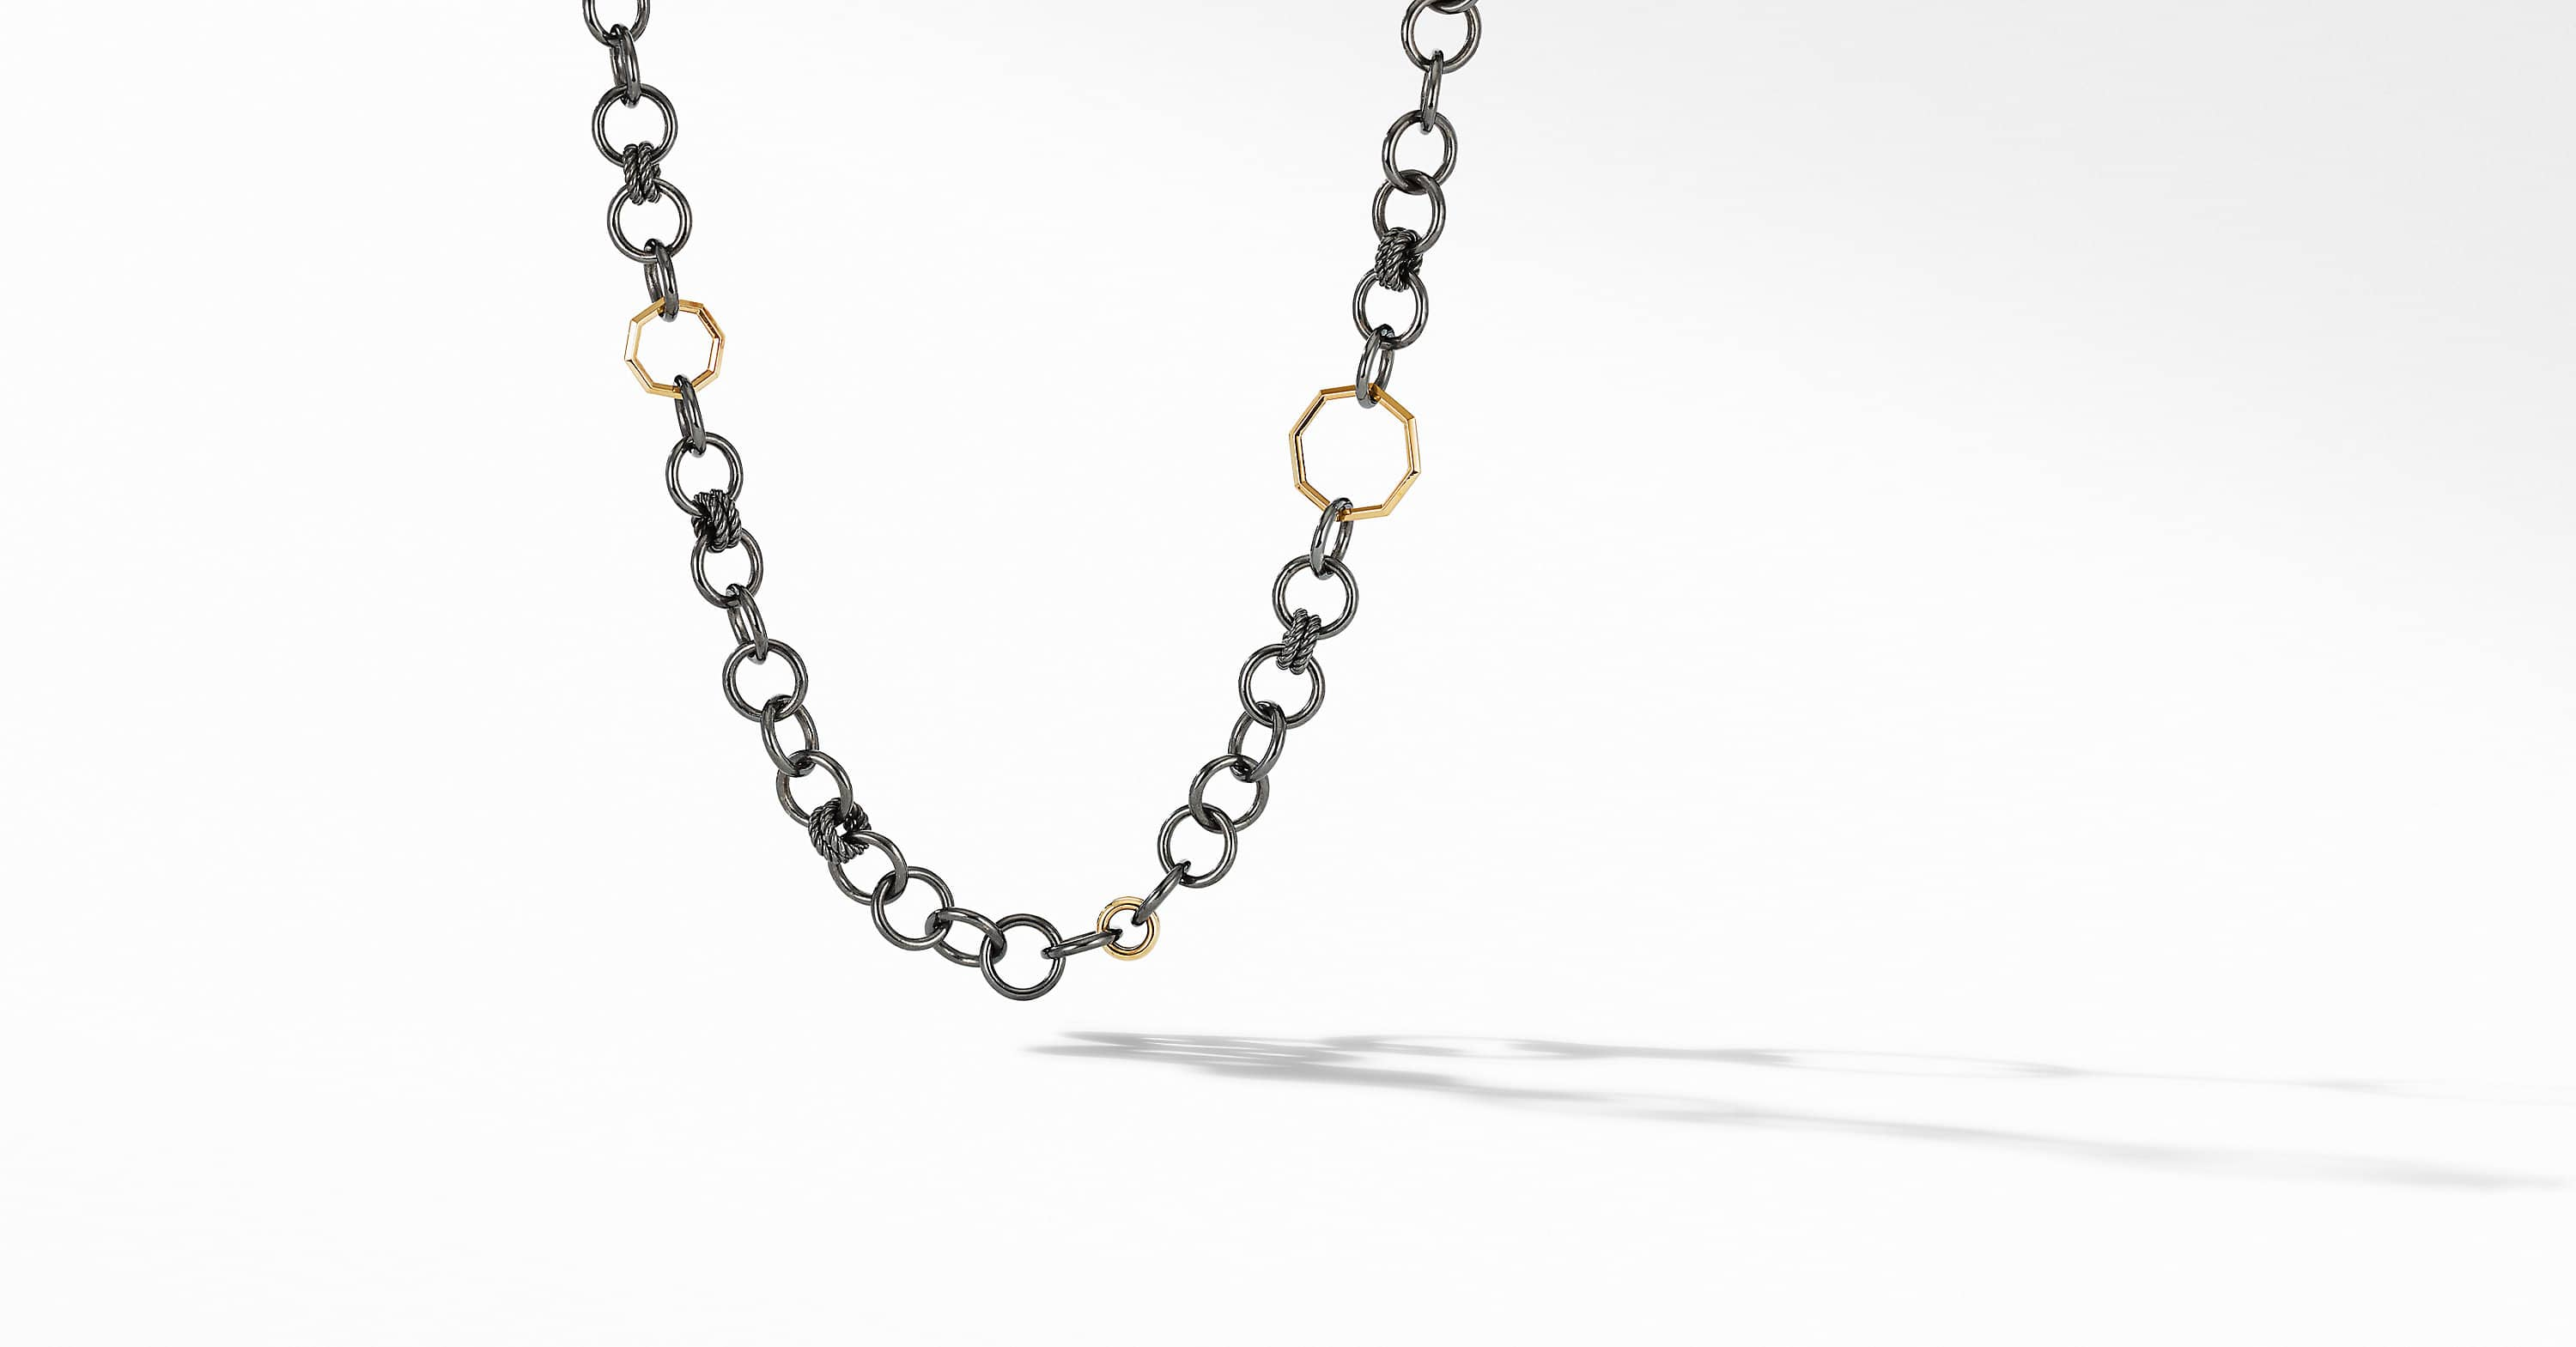 Stax Round Link Necklace in Blackened Silver